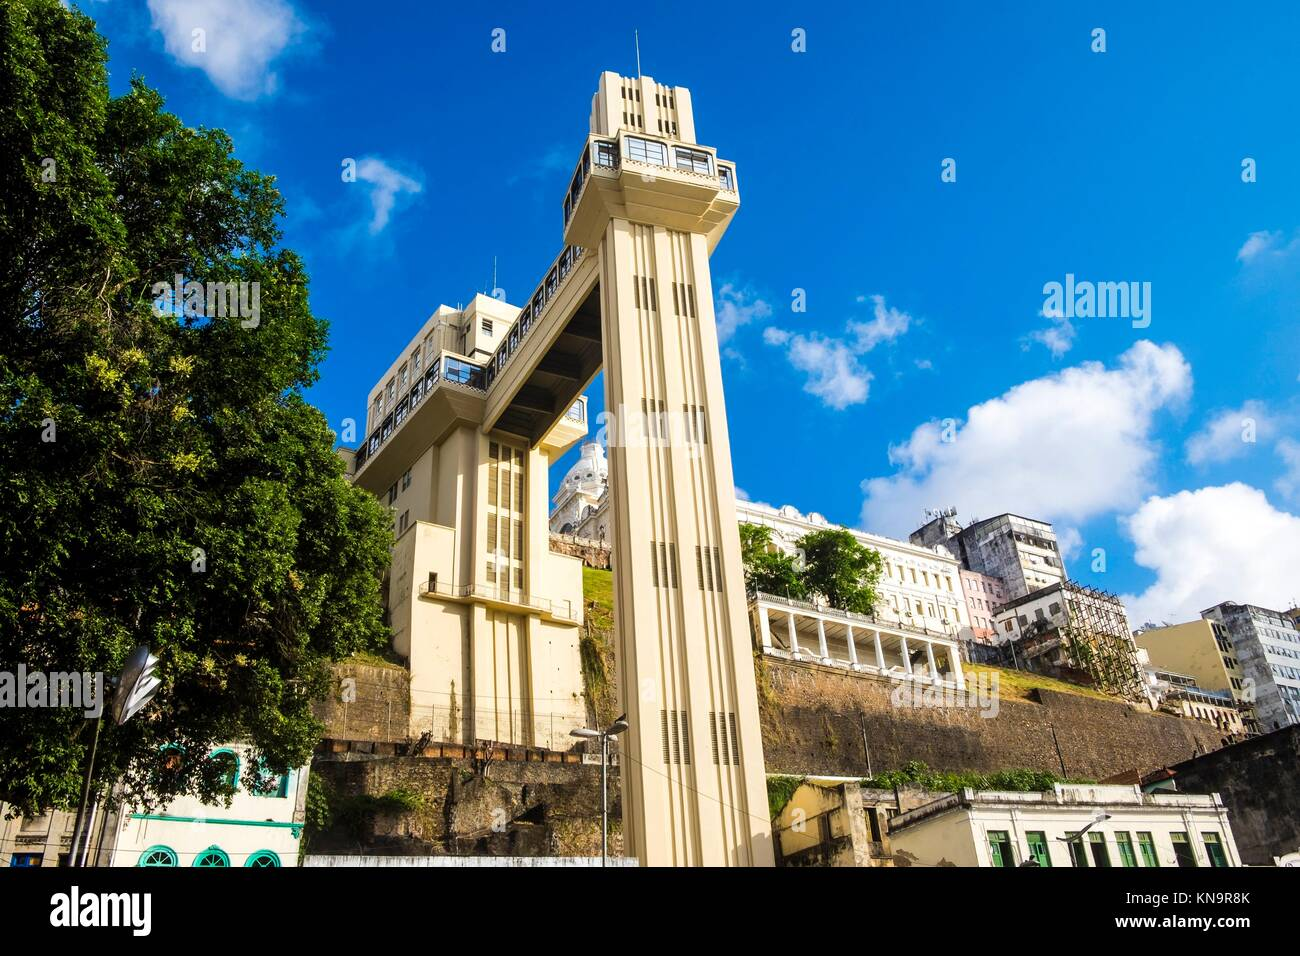 Elevador Lacerda elevator is one of the most famous landmarks in Salvador de Bahia Brazil. - Stock Image